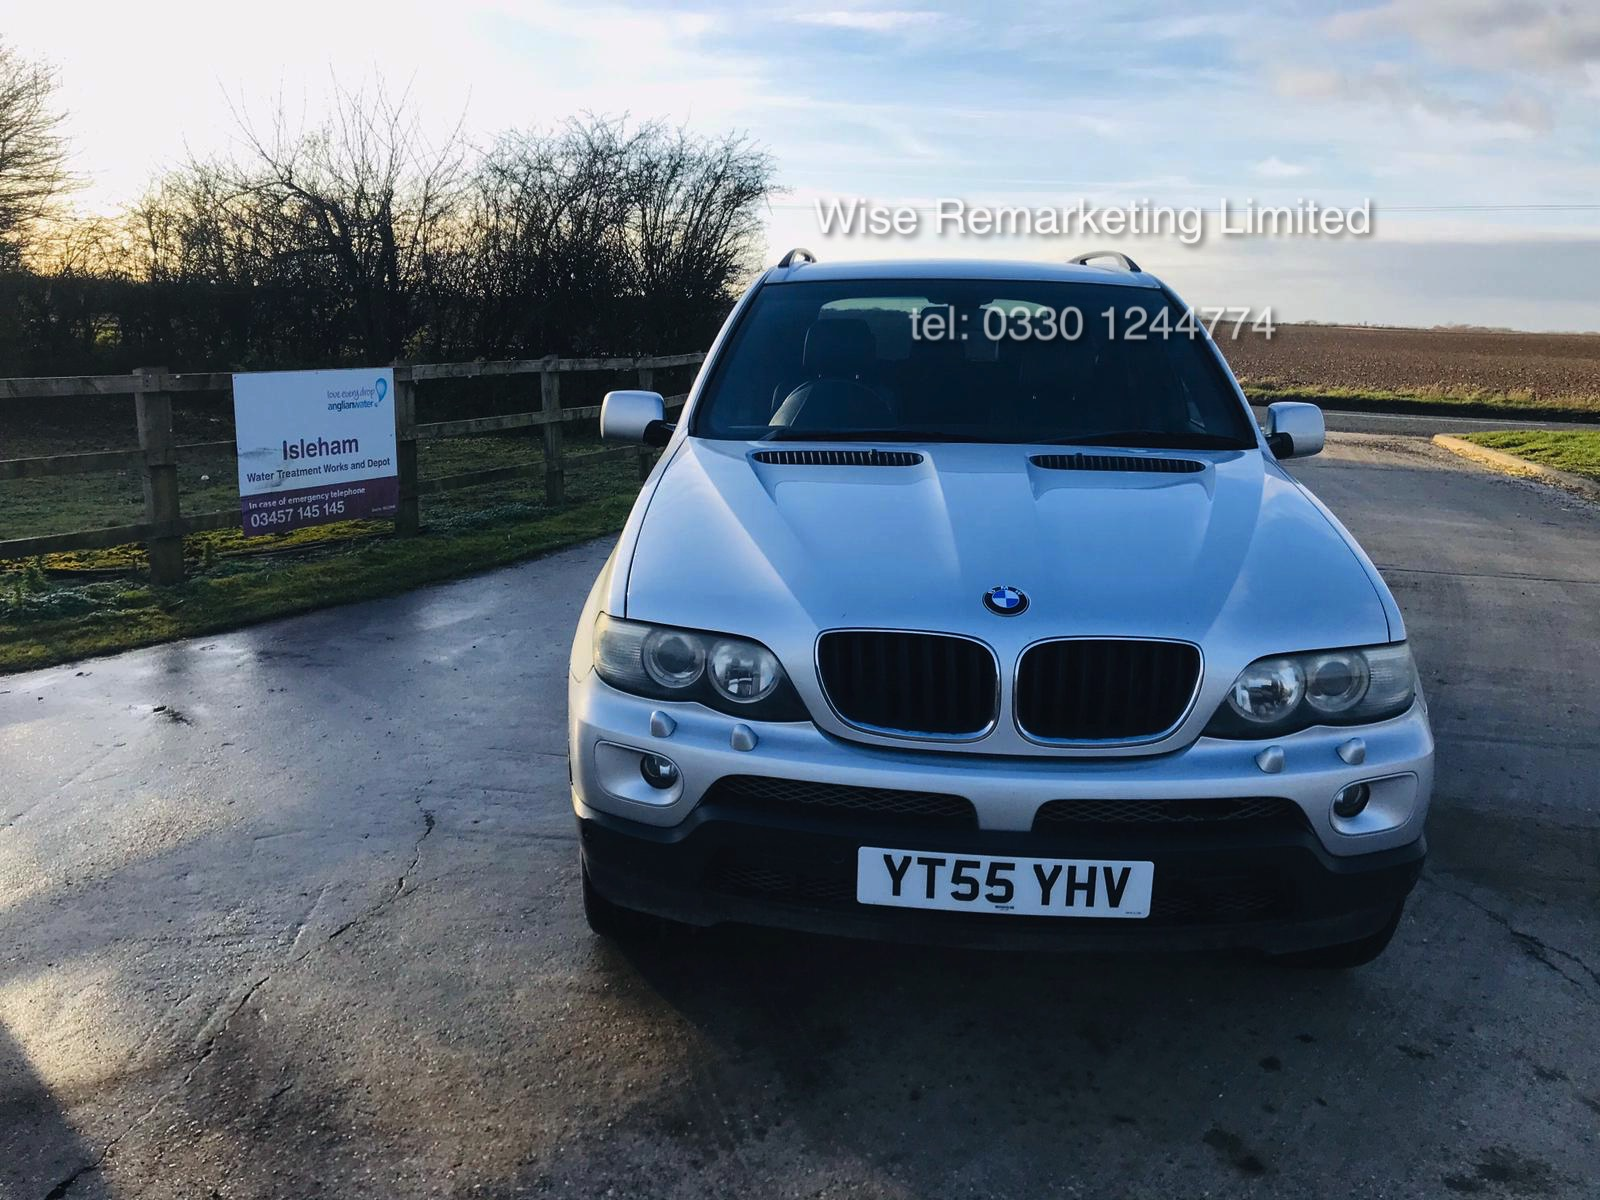 BMW X5 Sport 3.0d Auto - 2006 Model - Full Leather - Heated Seats - Fully Loaded - Image 3 of 20